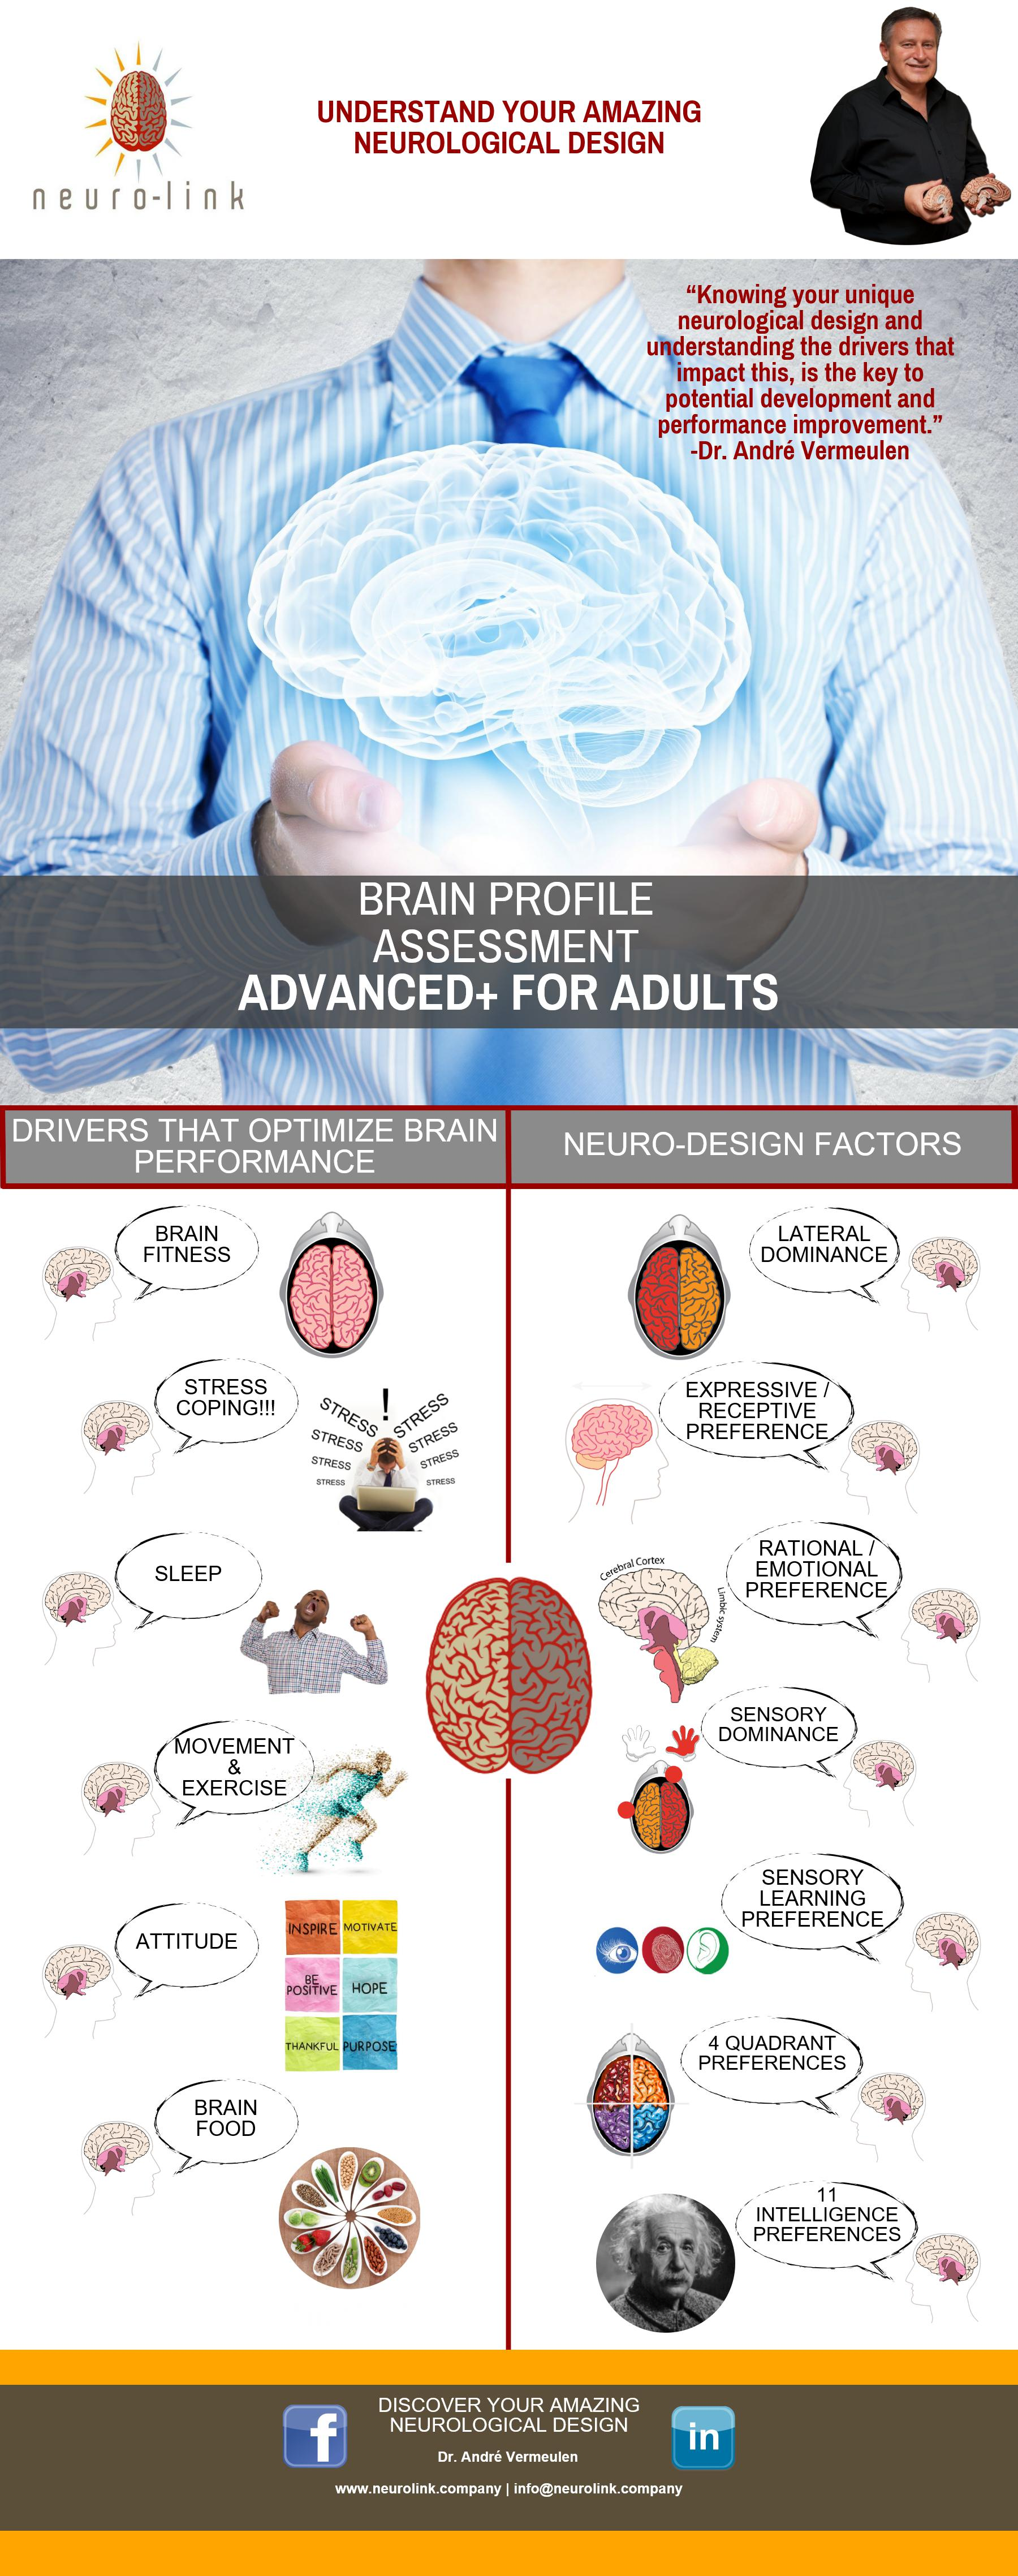 your-amazing-neurological-design-advanced-for-adults